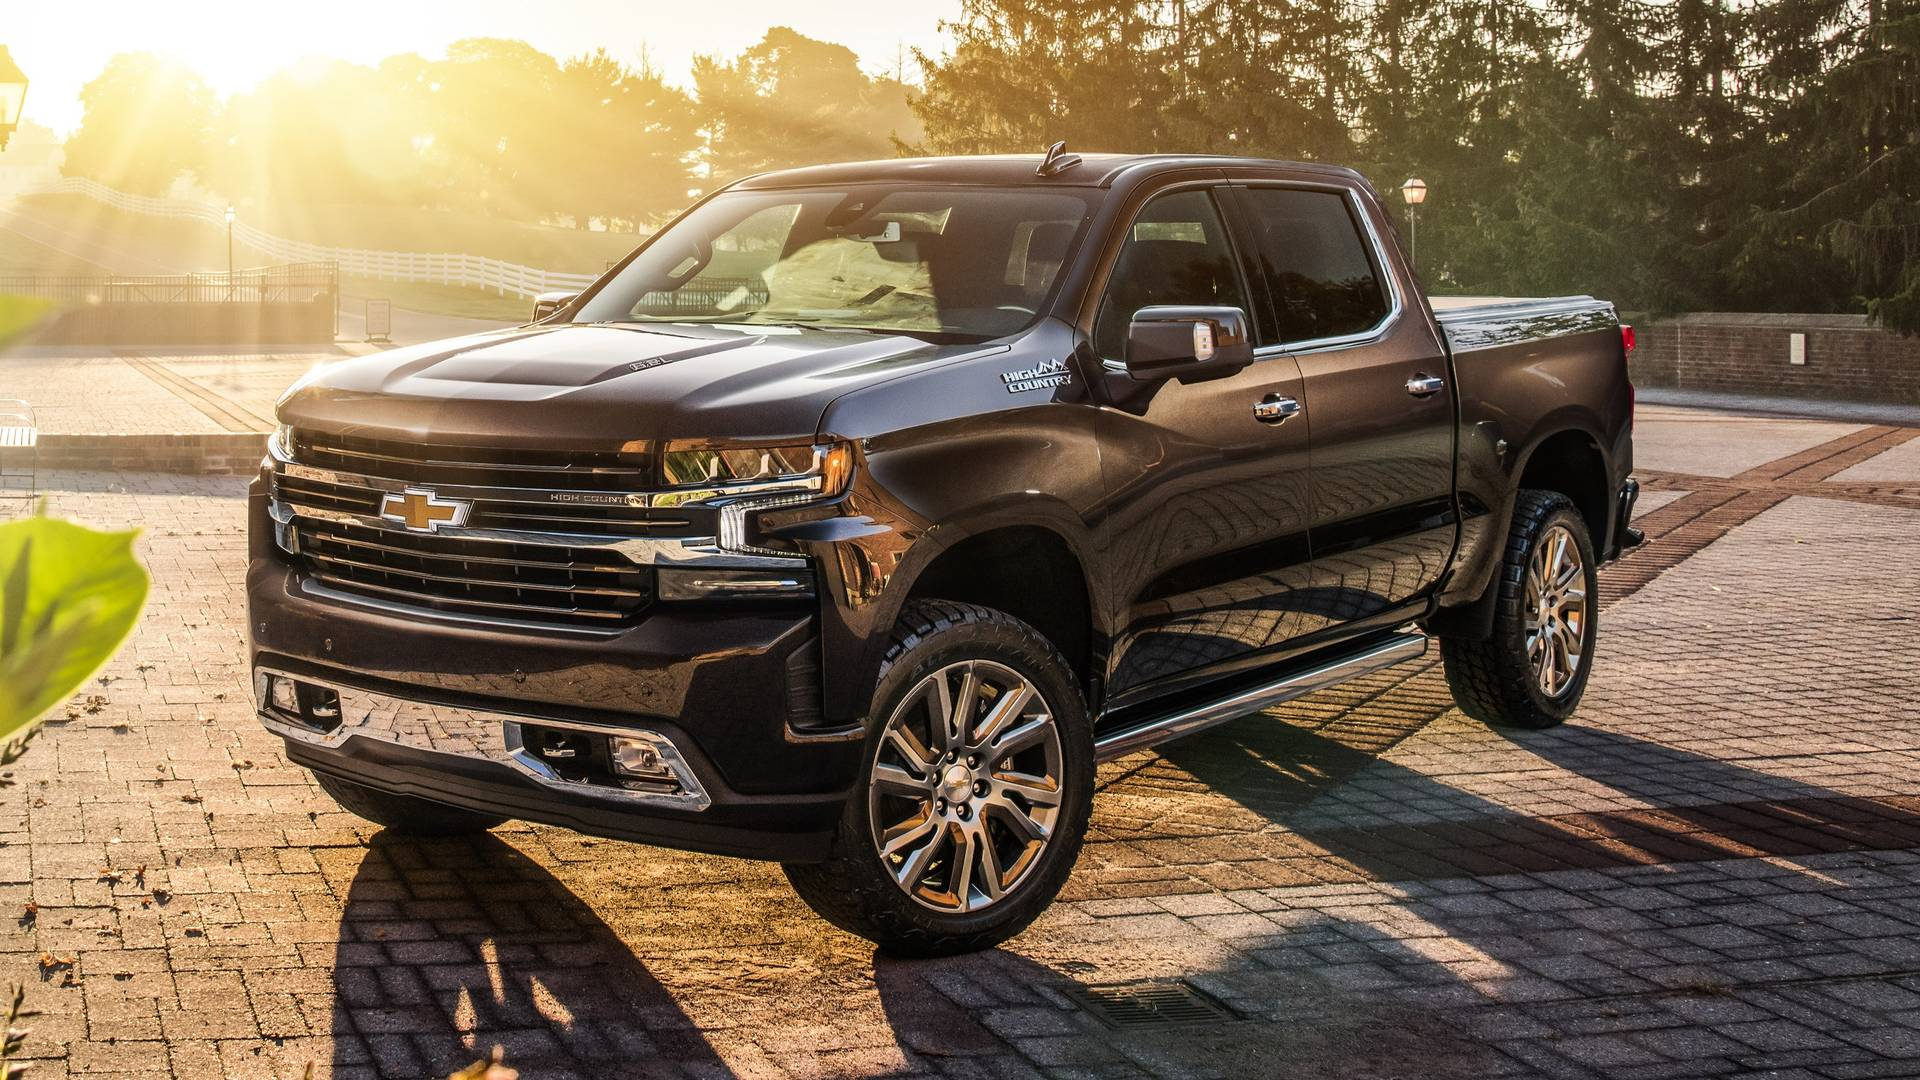 Chevy Silverado Concepts Show Off The Potential For ...